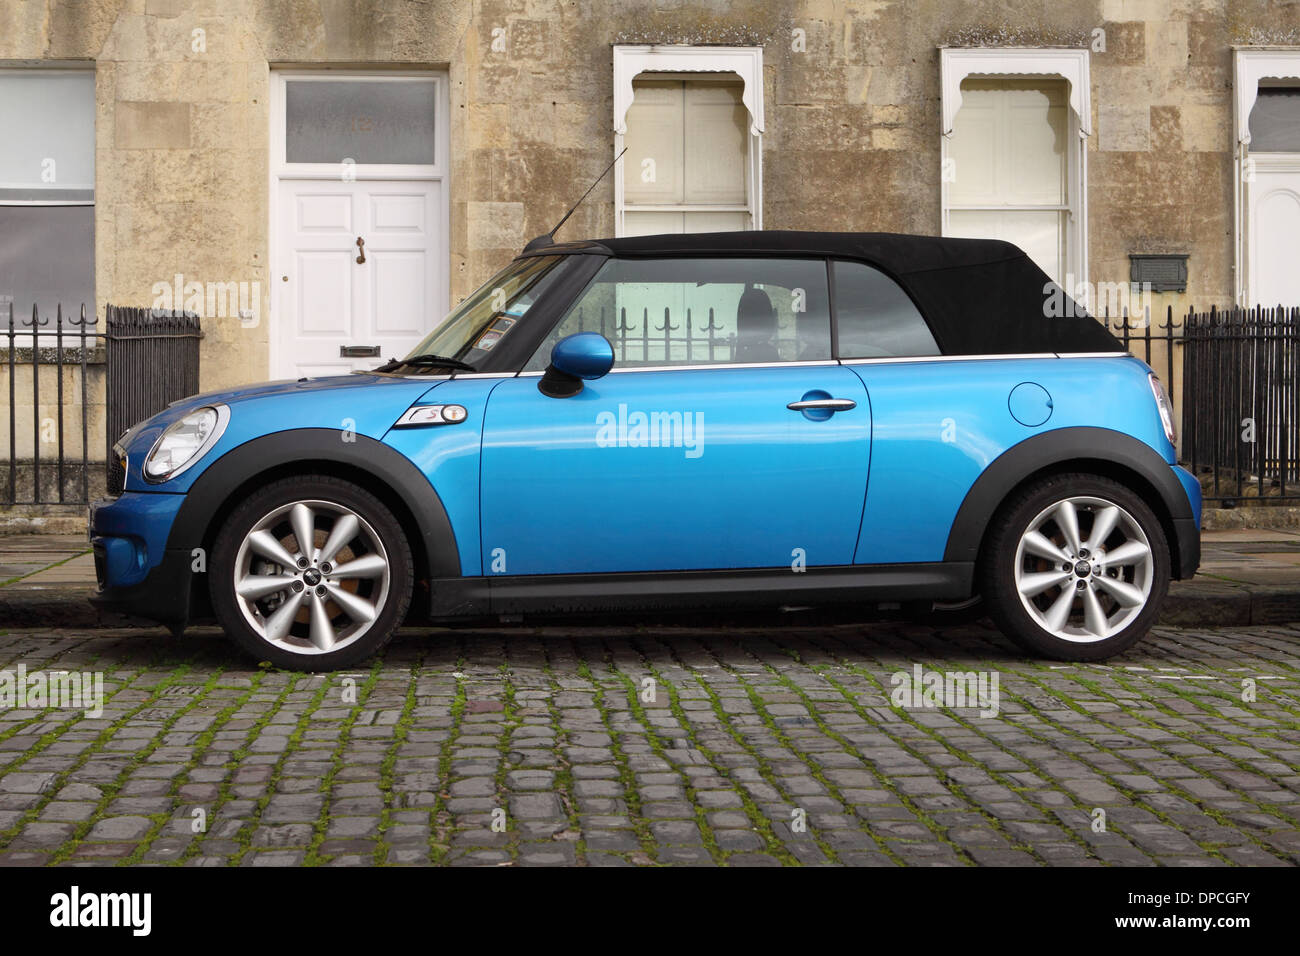 BMW Mini One Convertible soft top photographed in The Royal Crescent Bath England UK - Stock Image